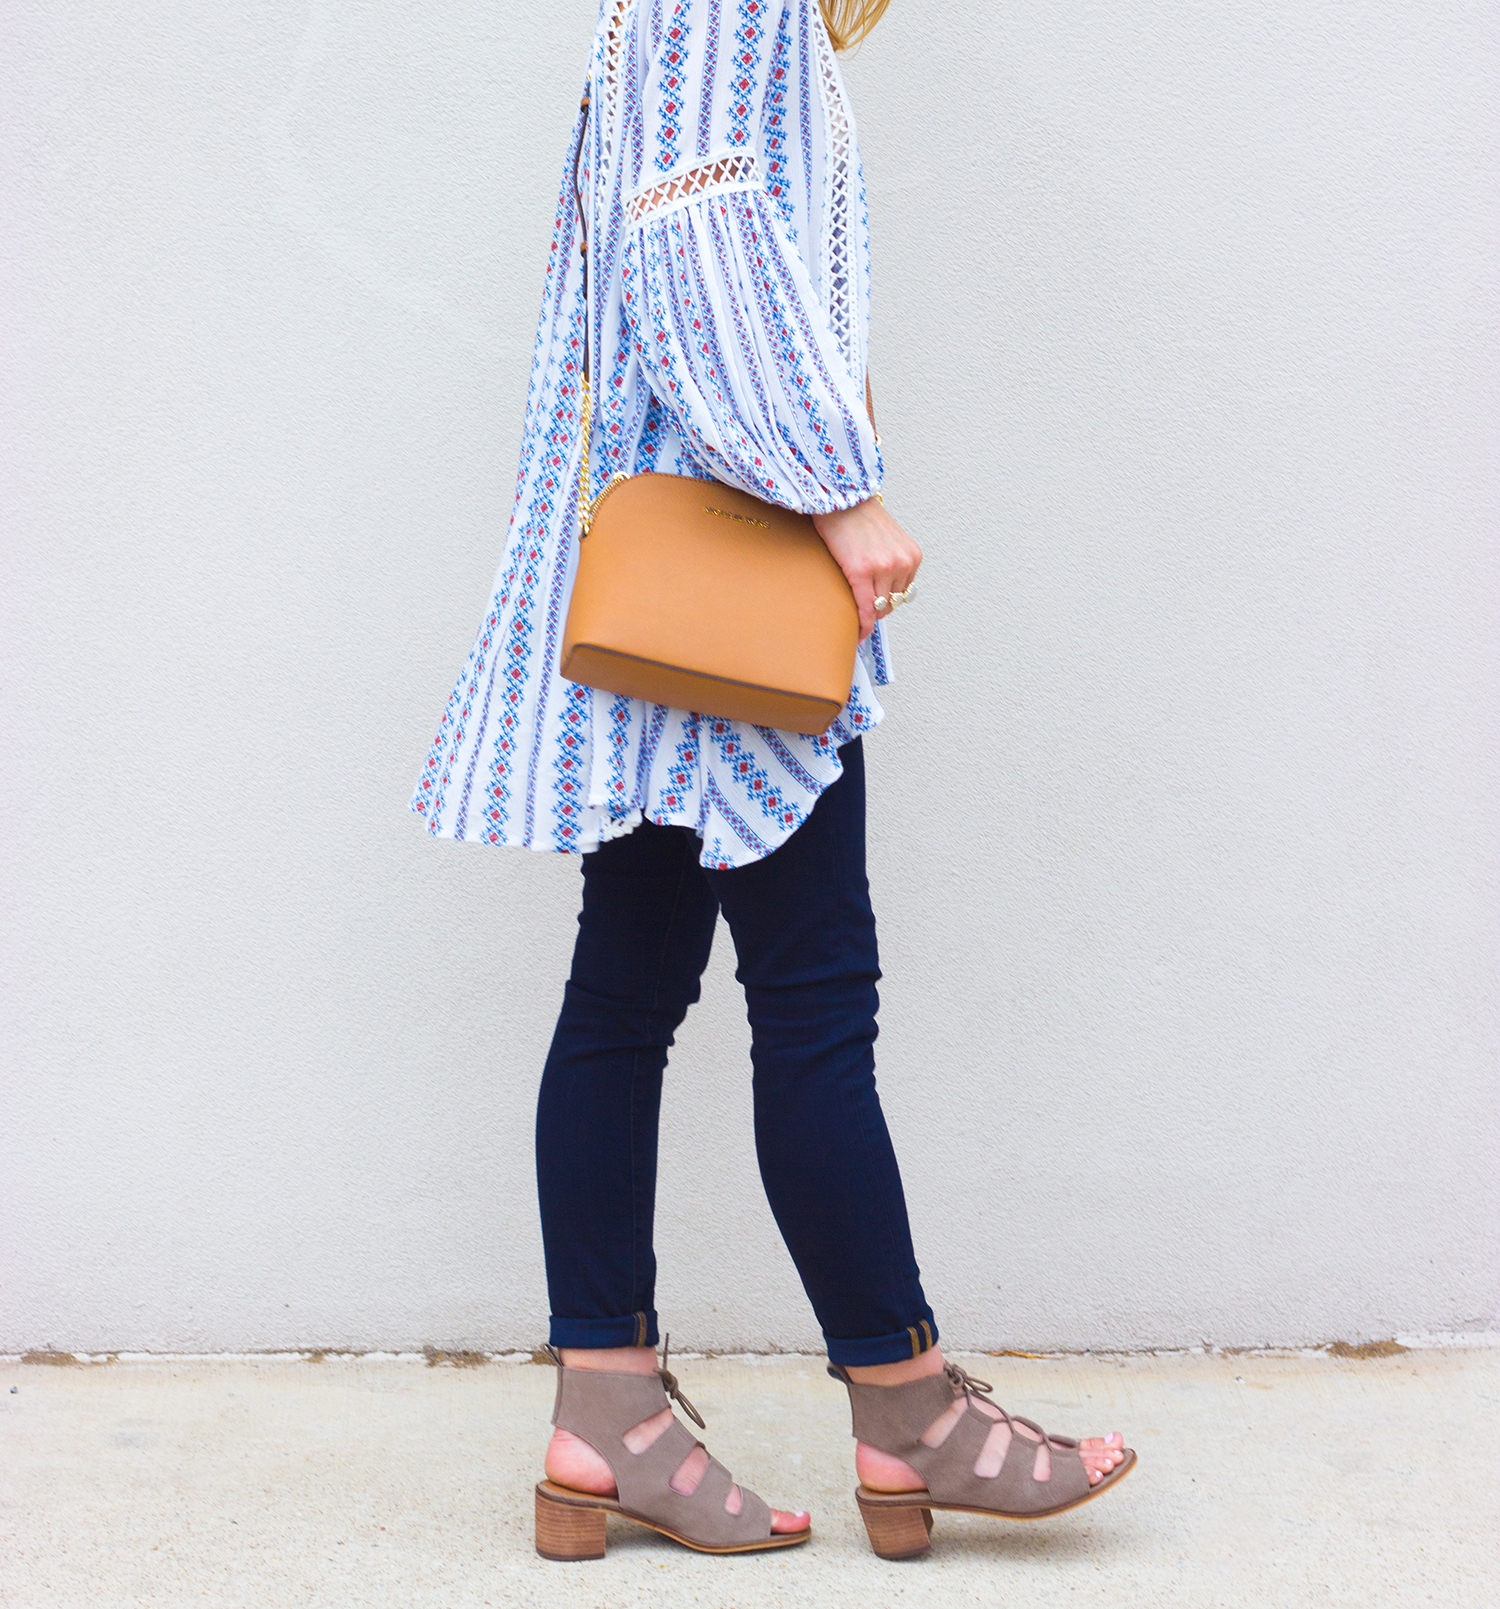 livvyland-blog-olivia-watson-boho-printed-oversize-tunic-chicwish-rebecca-minkoff-dark-wash-skinny-jeans-olivia-watson-austin-texas-fashion-blogger-steve-madden-roslyn-lace-up-sandals-4